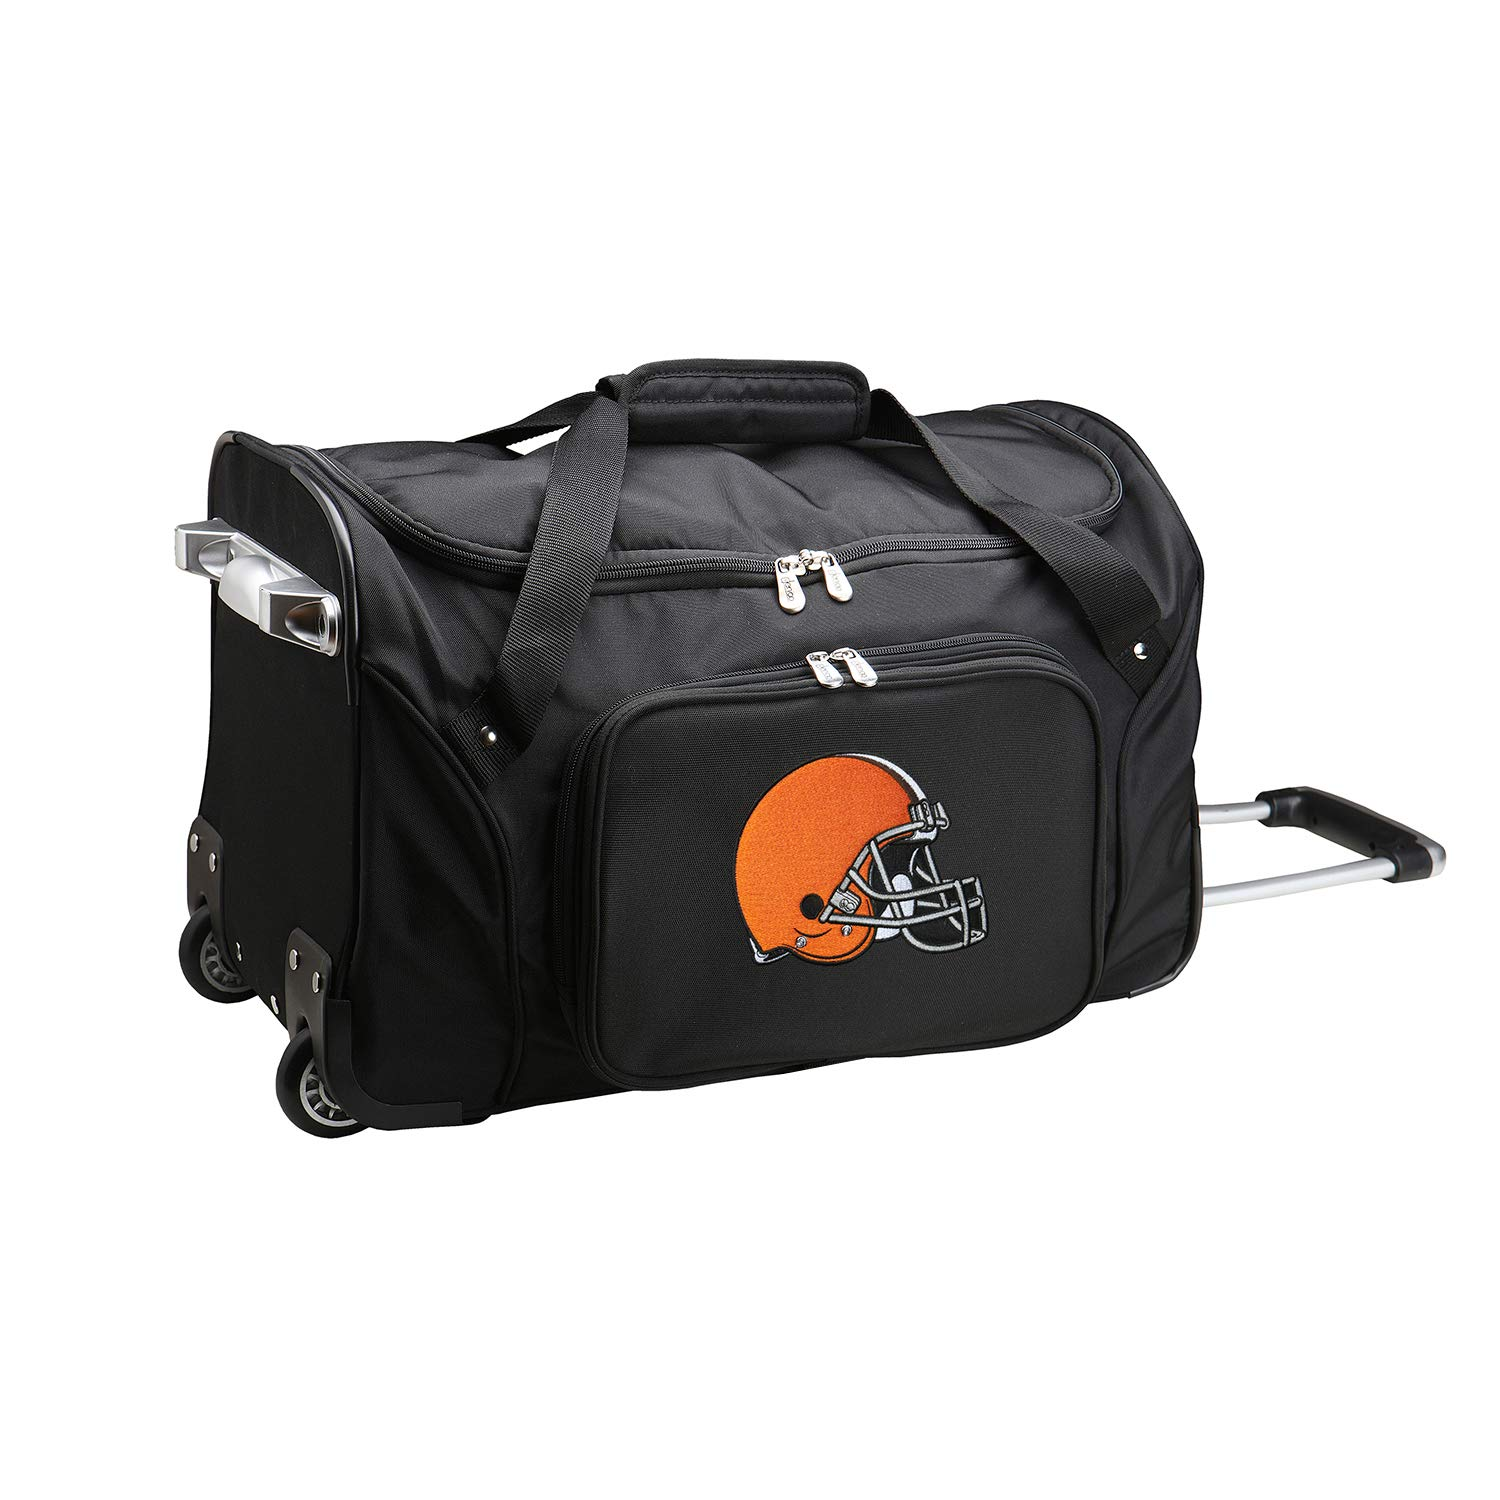 NFL Cleveland Browns Wheeled Duffle Bag, 22 x 12 x 5.5, Black by Denco